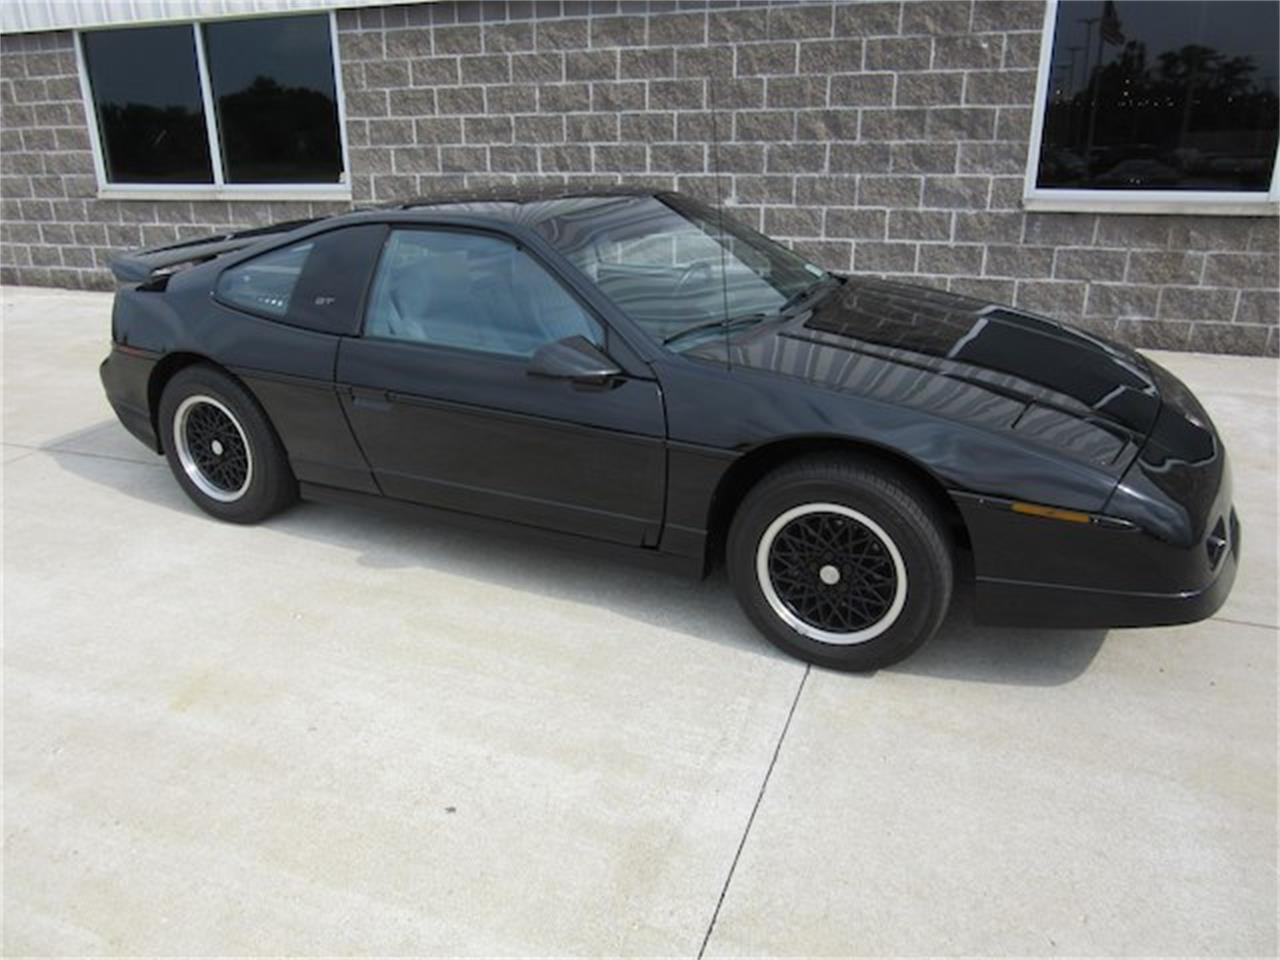 Large Picture of 1988 Pontiac Fiero located in Greenwood Indiana - $15,900.00 Offered by Ray Skillman Classic Cars - NVQQ